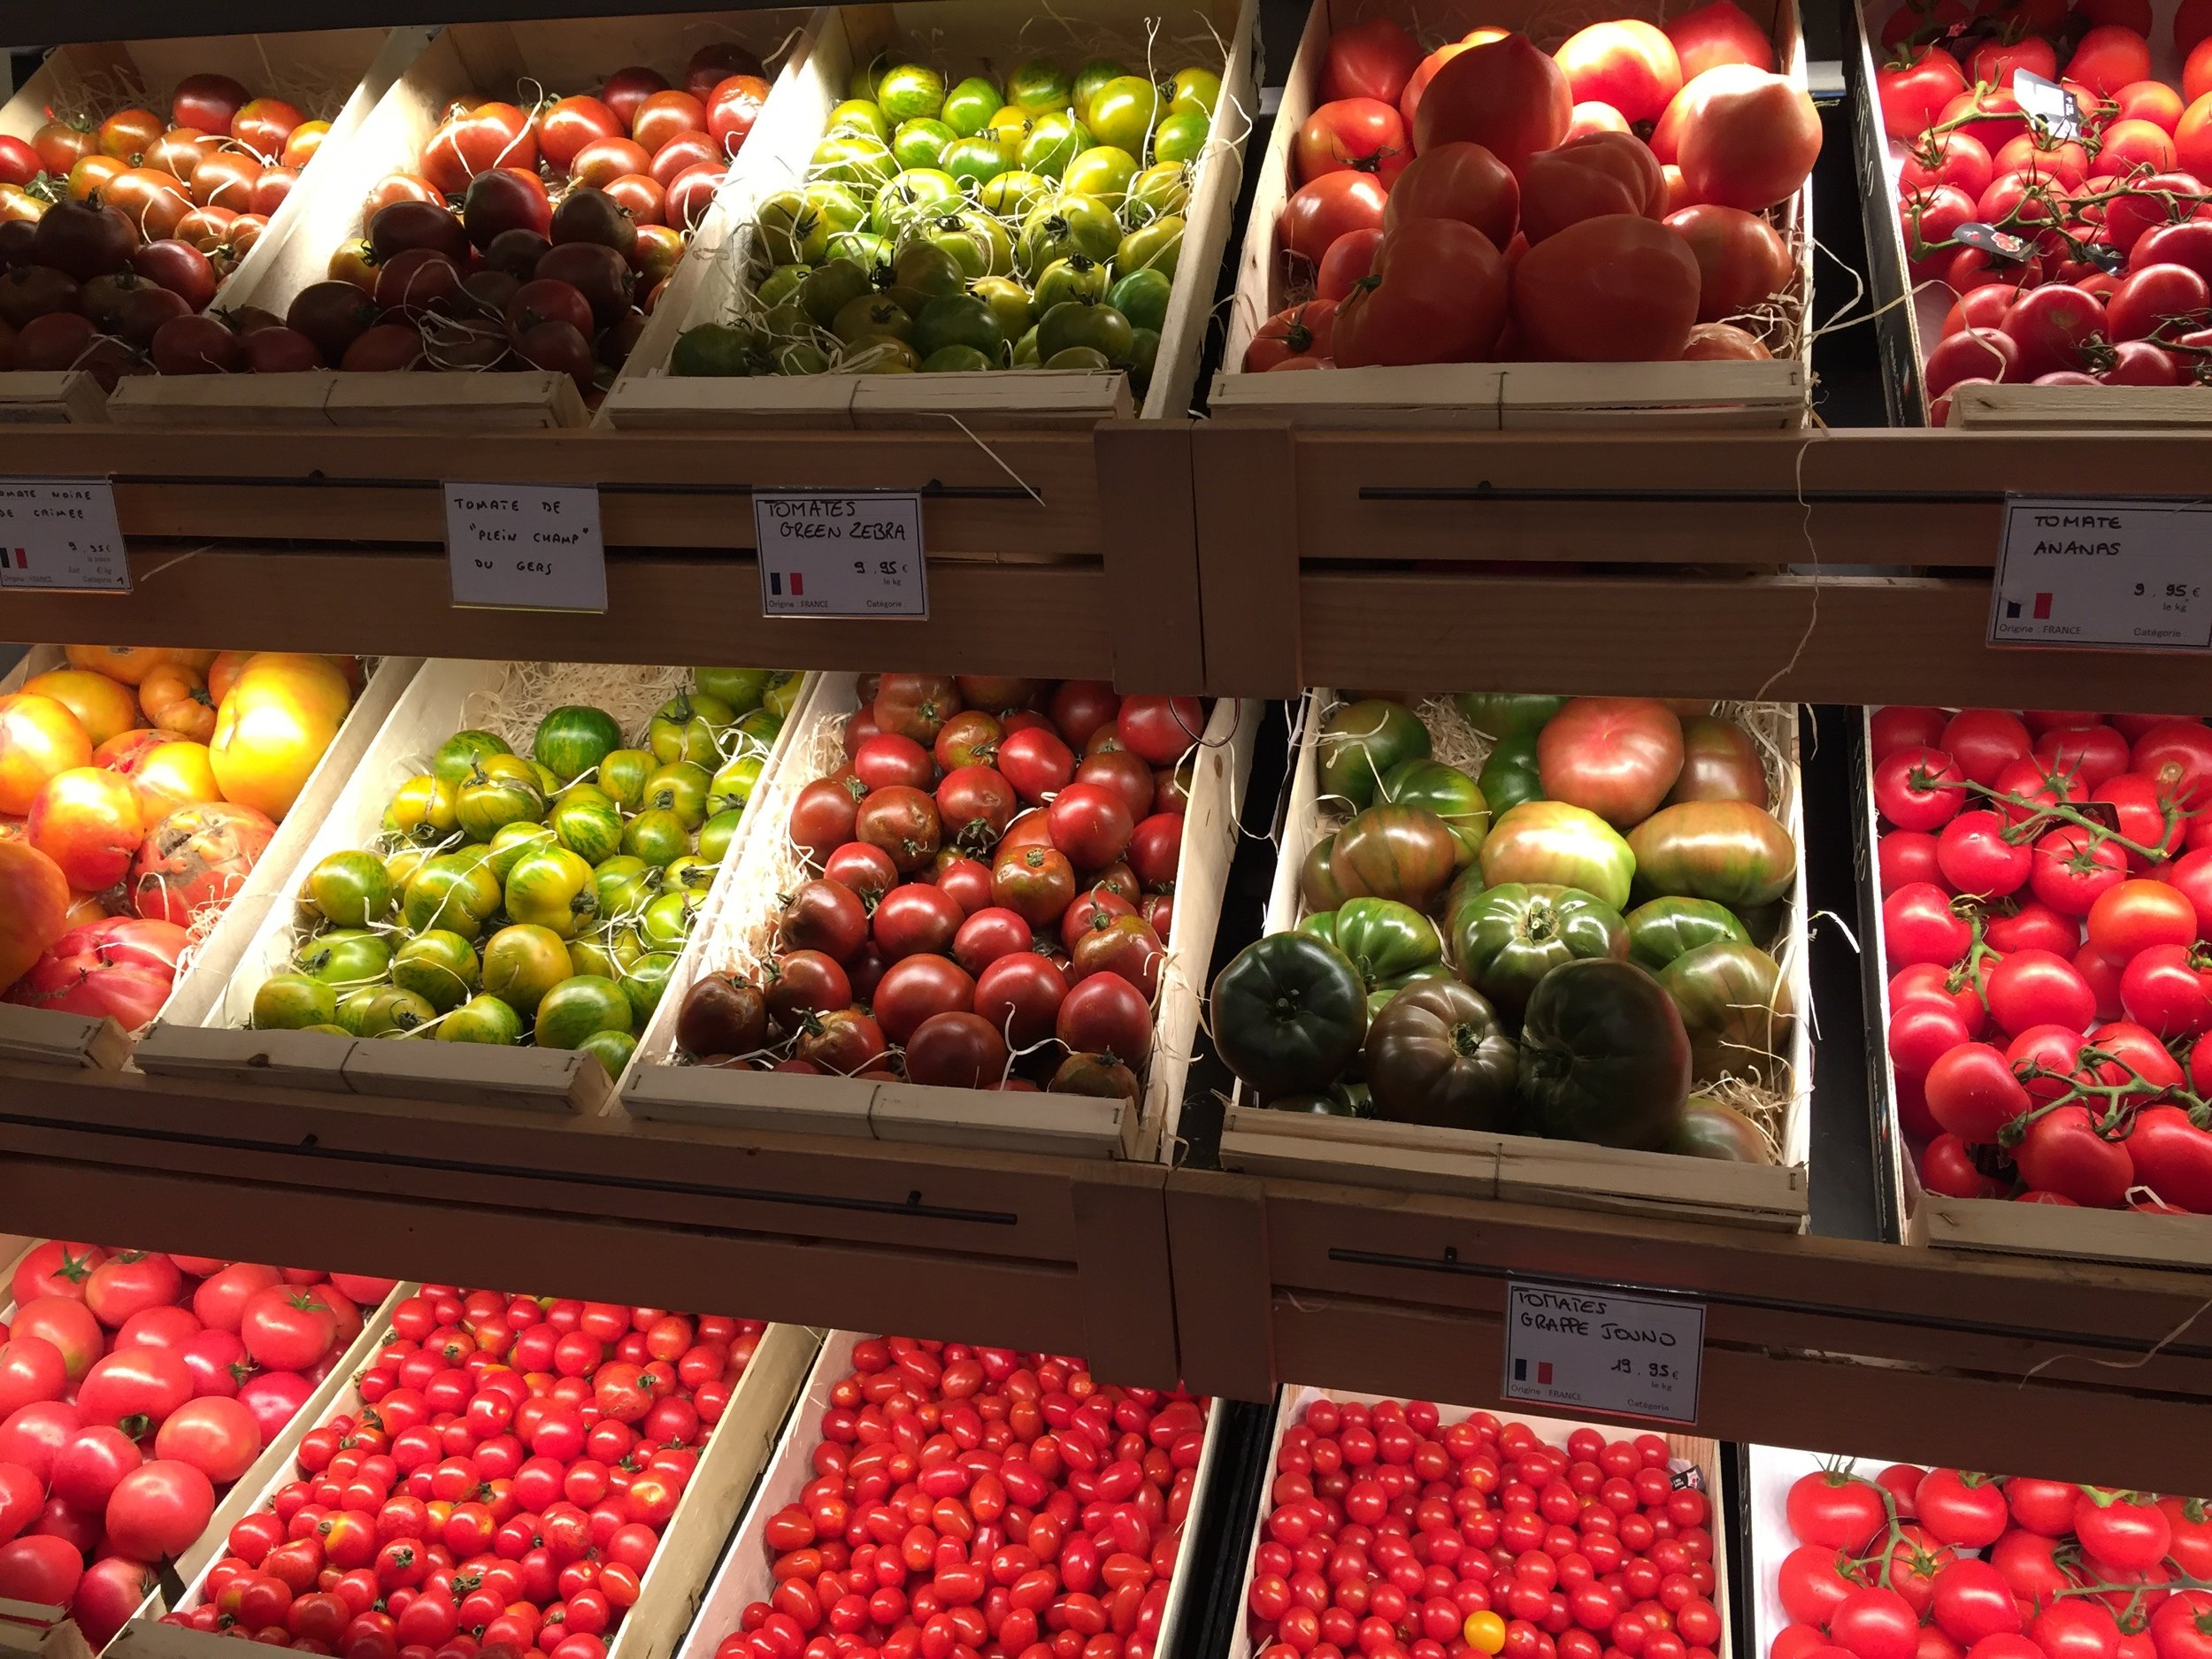 Tomatoes, variety names listed